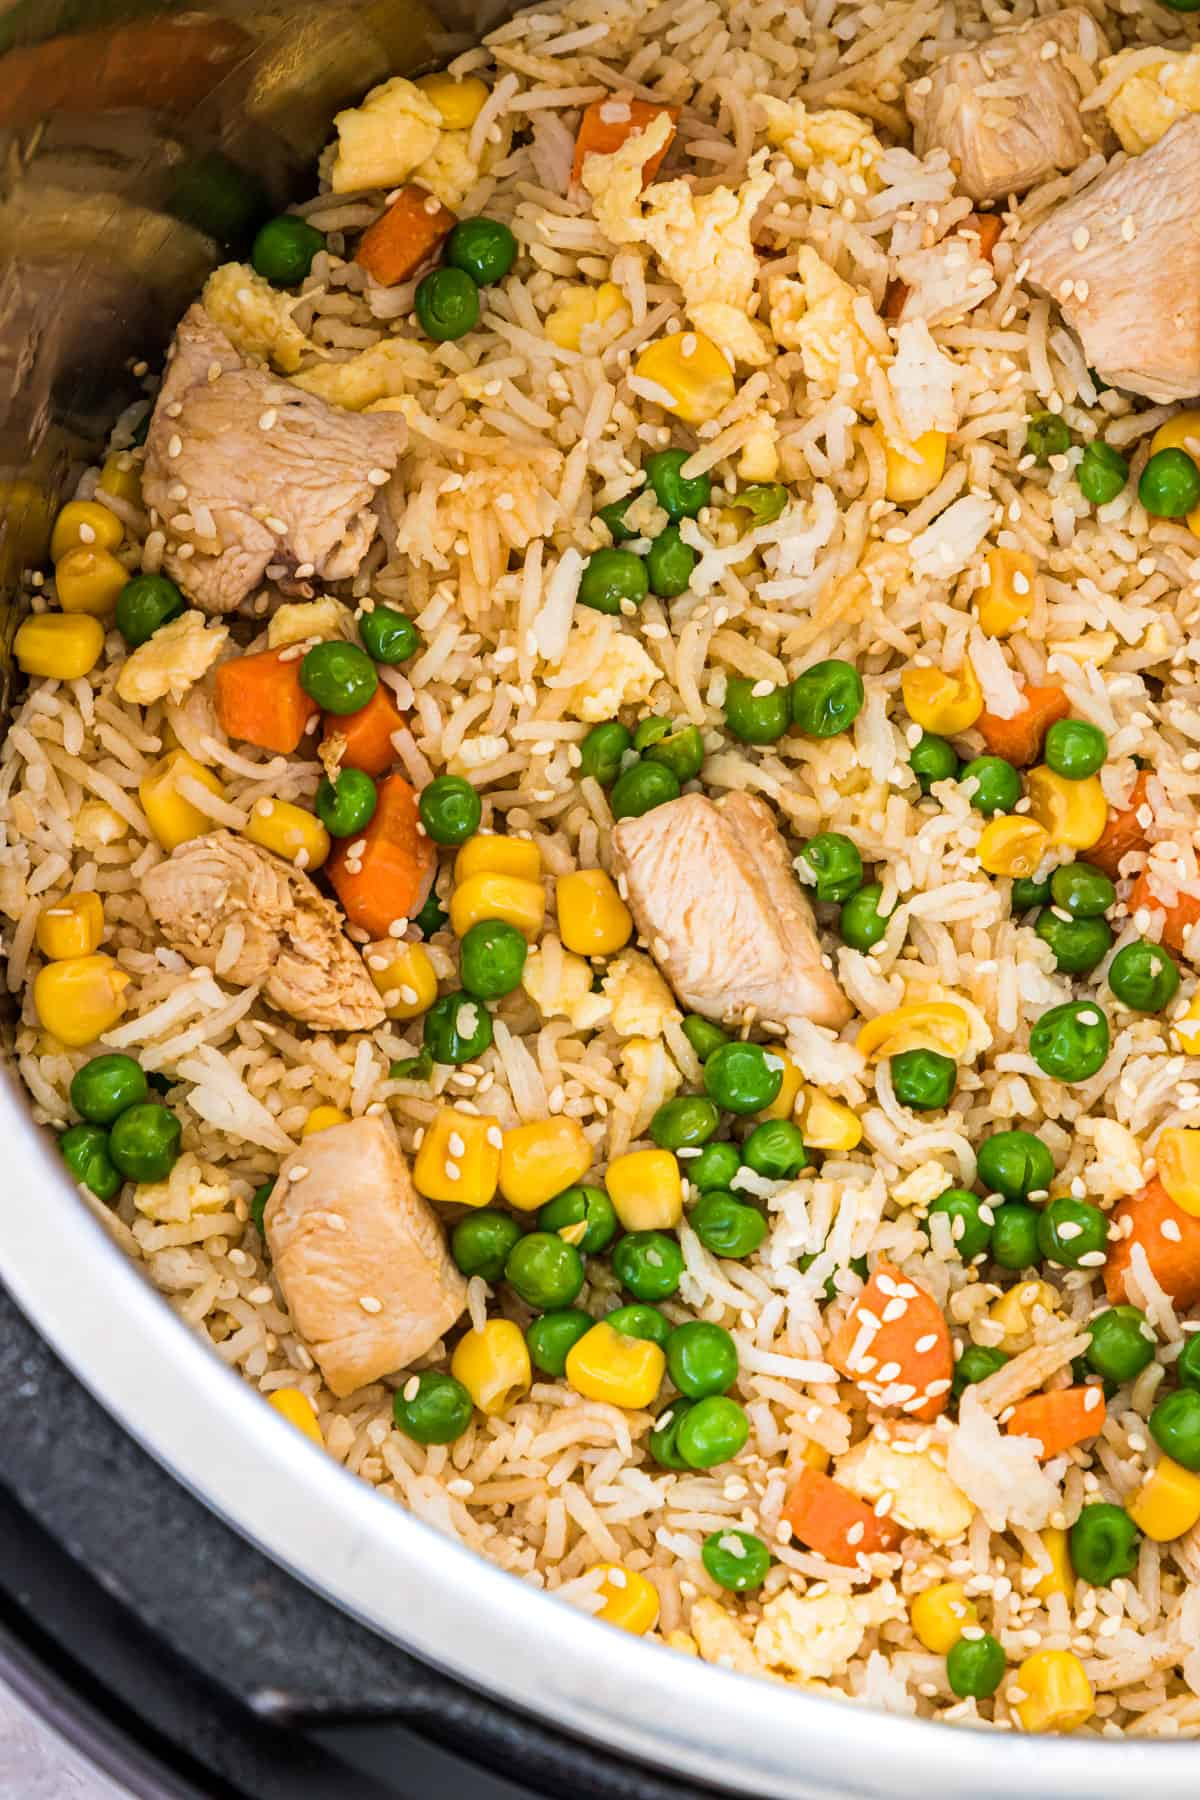 close up view of the instant pot chicken fried rice inside the instant pot